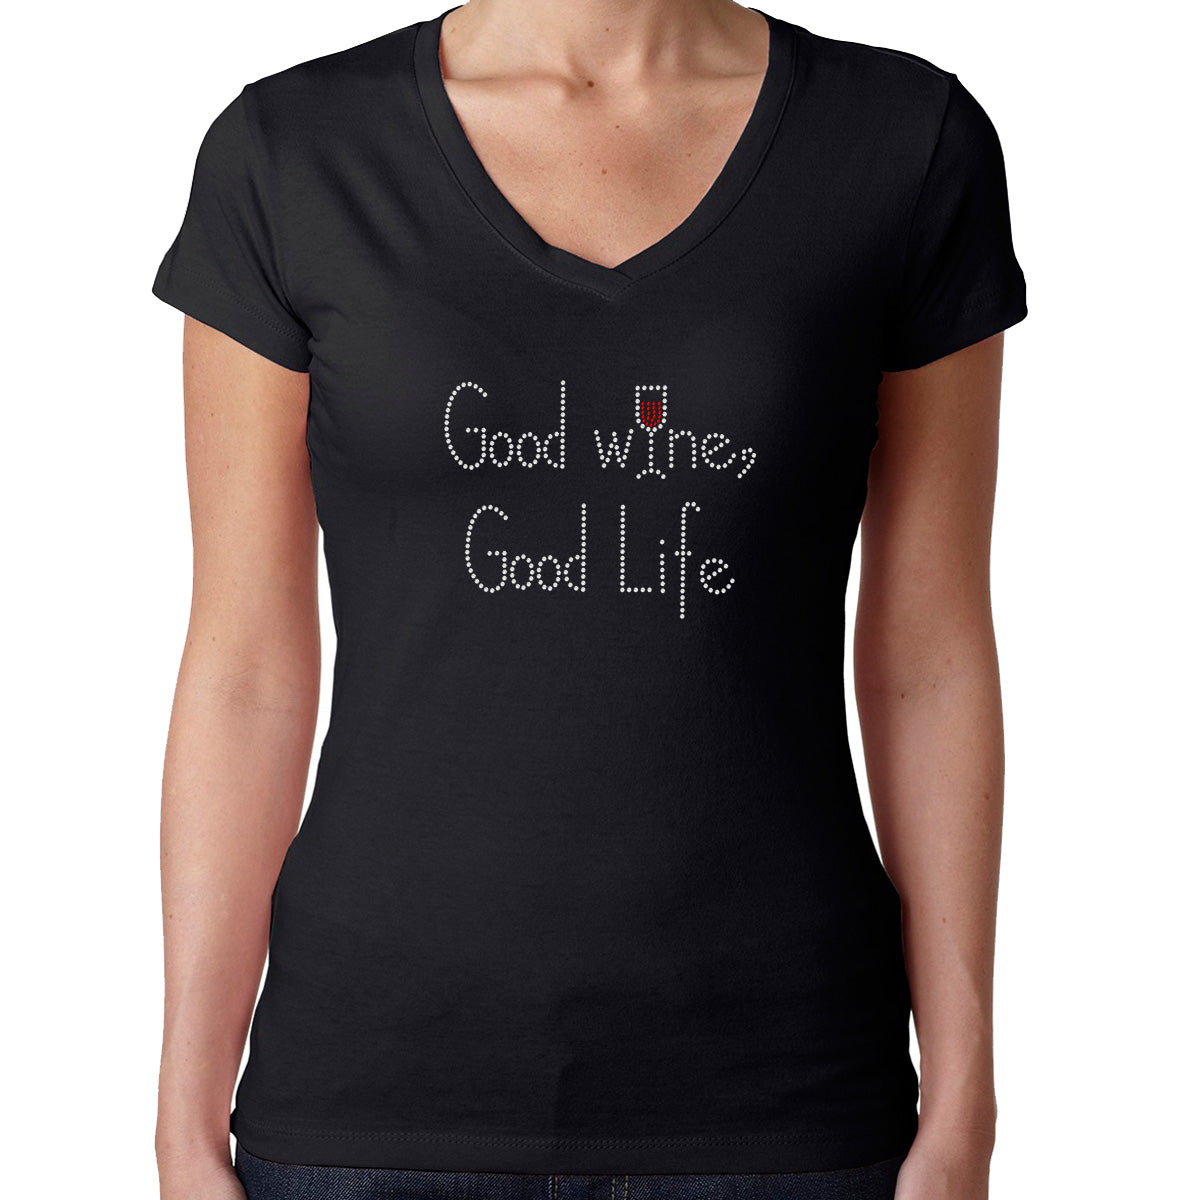 Womens T-Shirt Bling Black Fitted Tee Good Wine Good Life